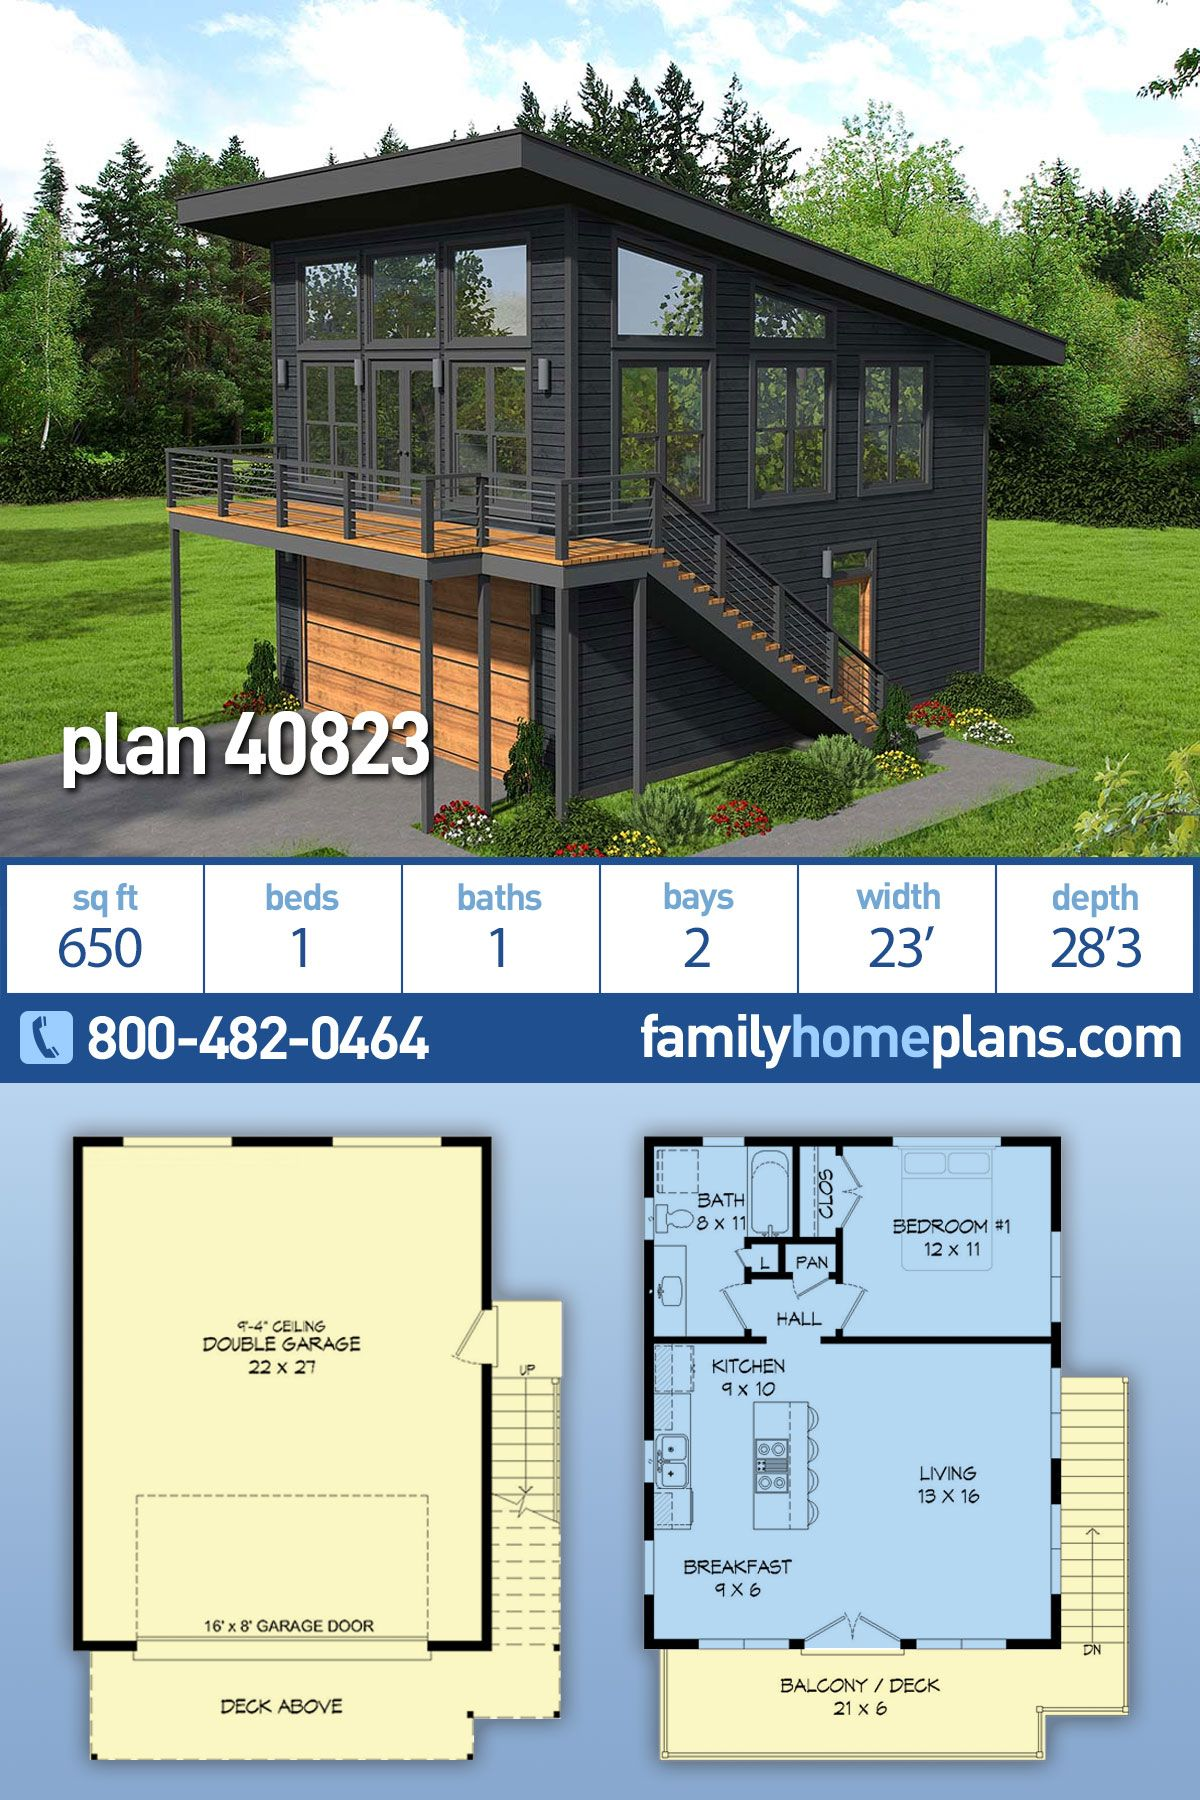 Modern Garage Apartment Plan #40823 One Bedroom and One Bathroom Over Two Car Garage